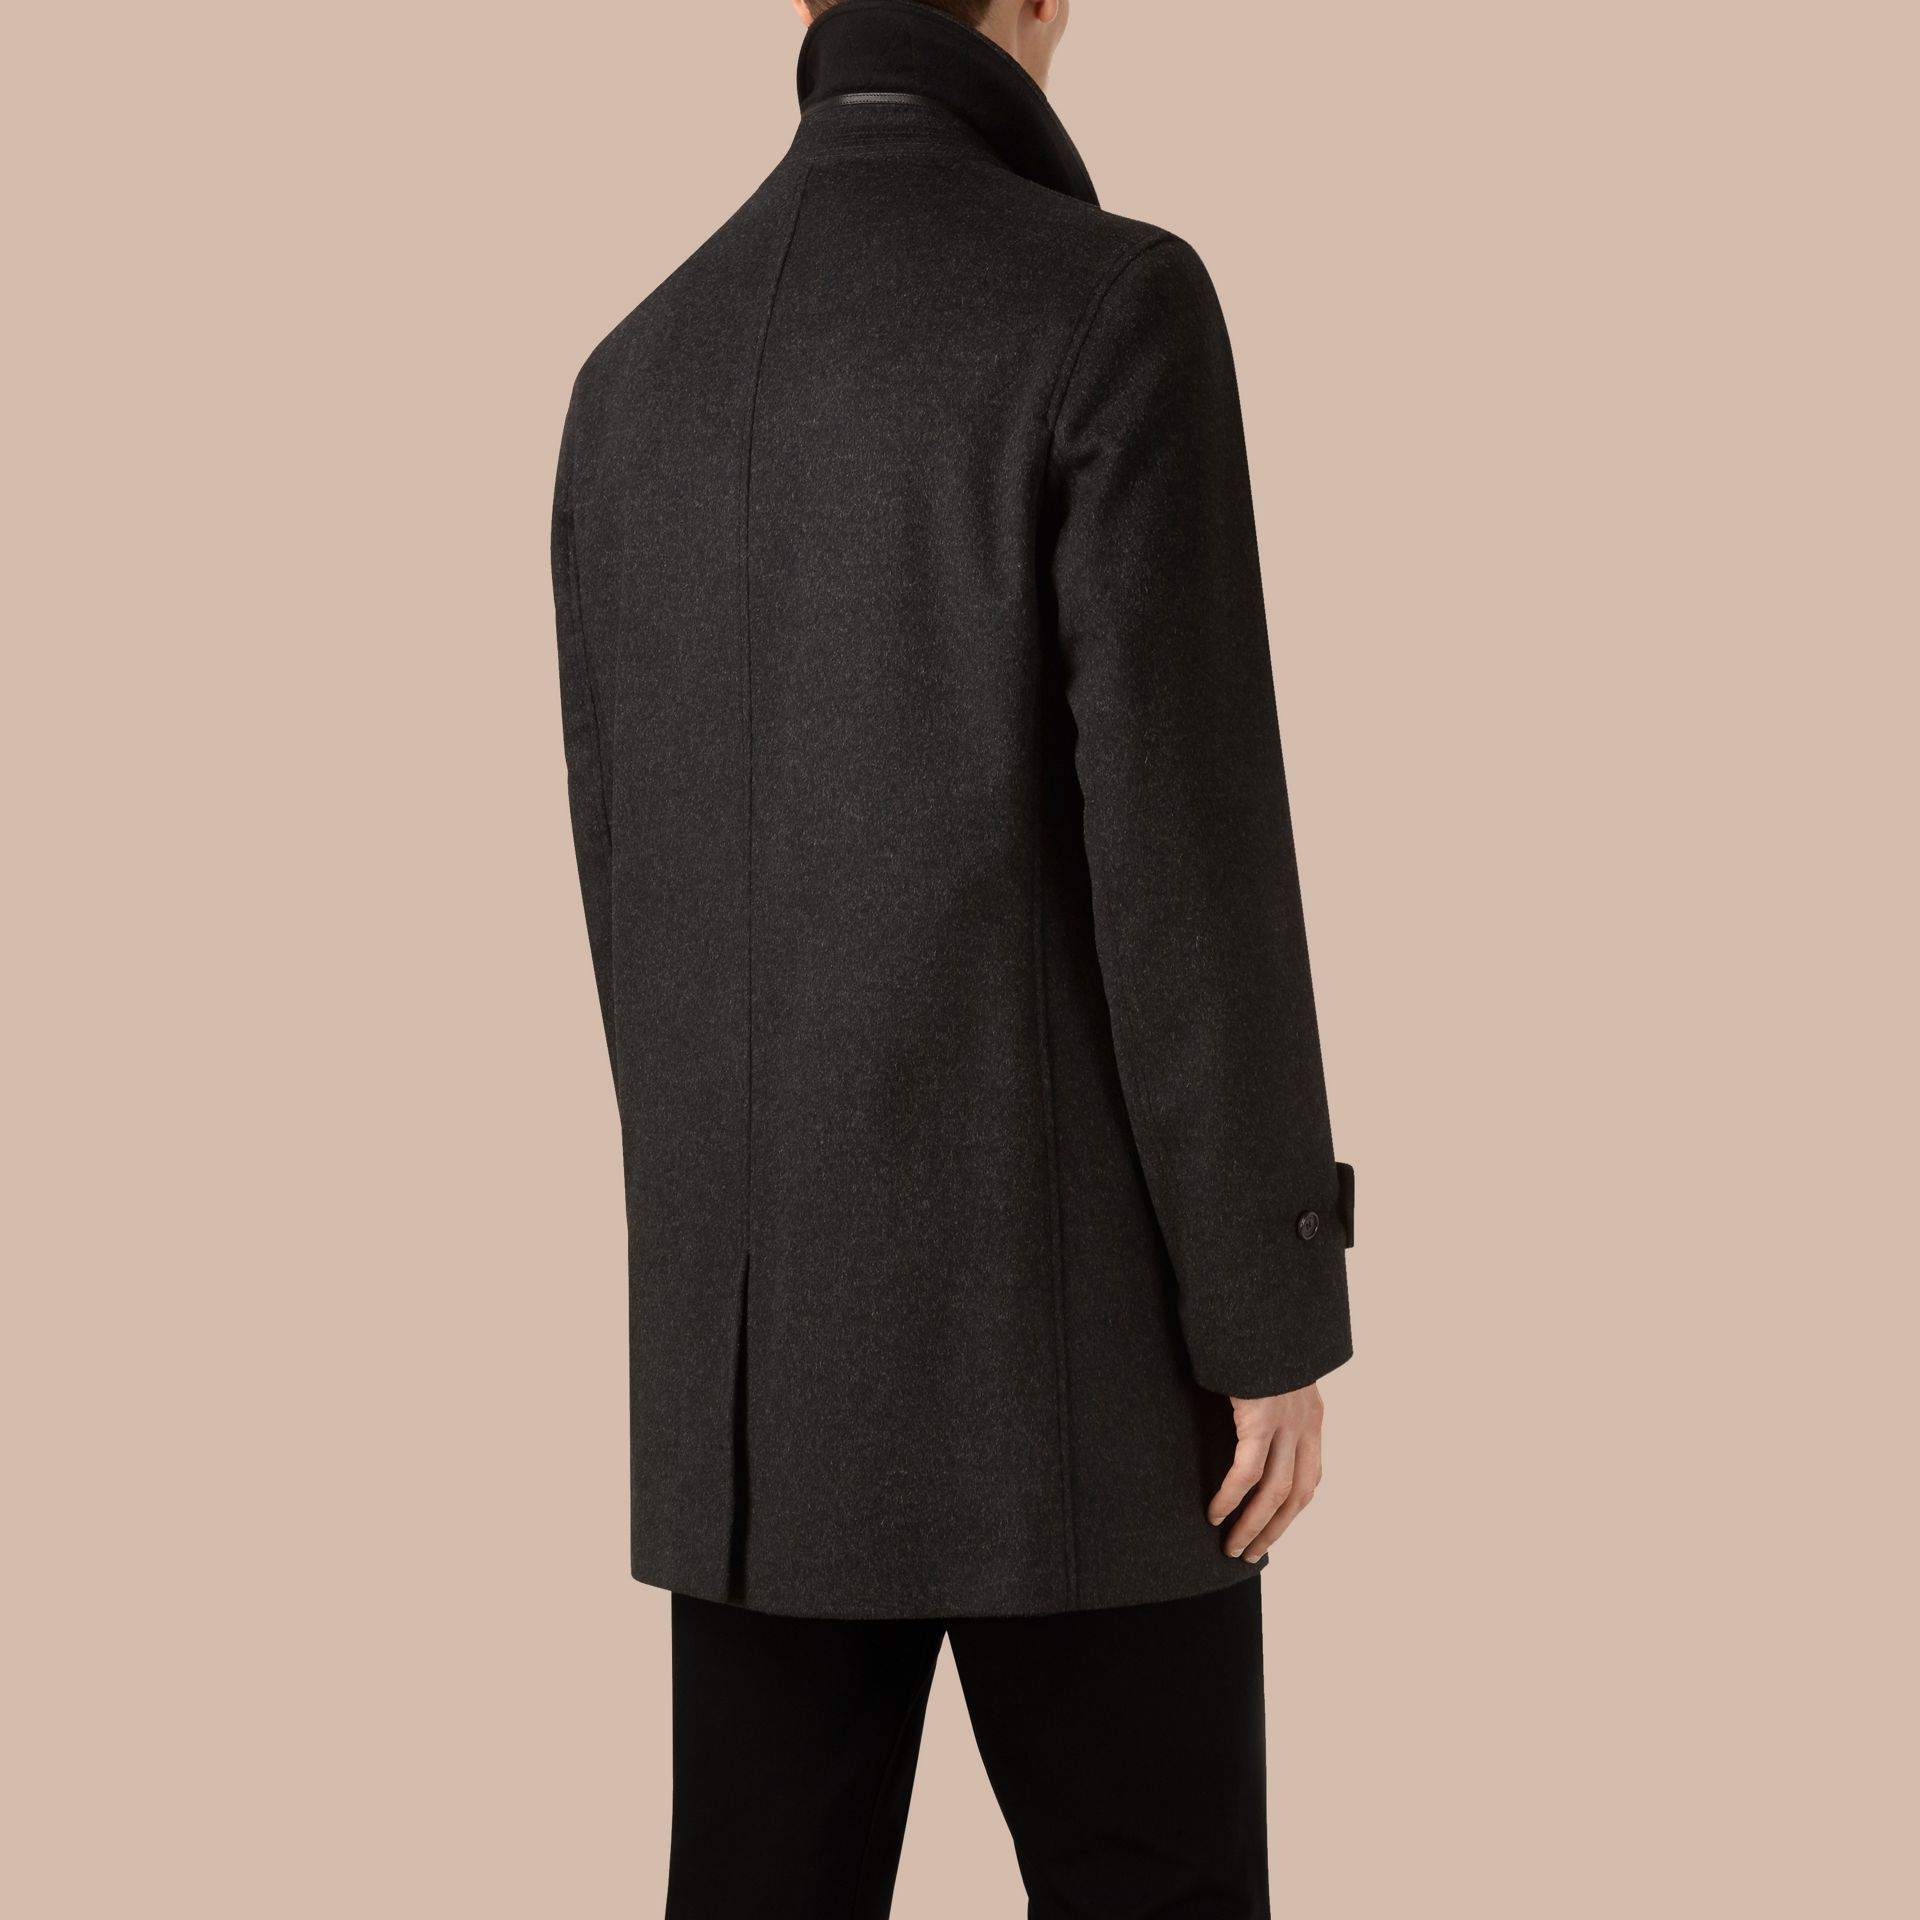 Dark grey melange Virgin Wool Cashmere Car Coat Dark Grey Melange - gallery image 3